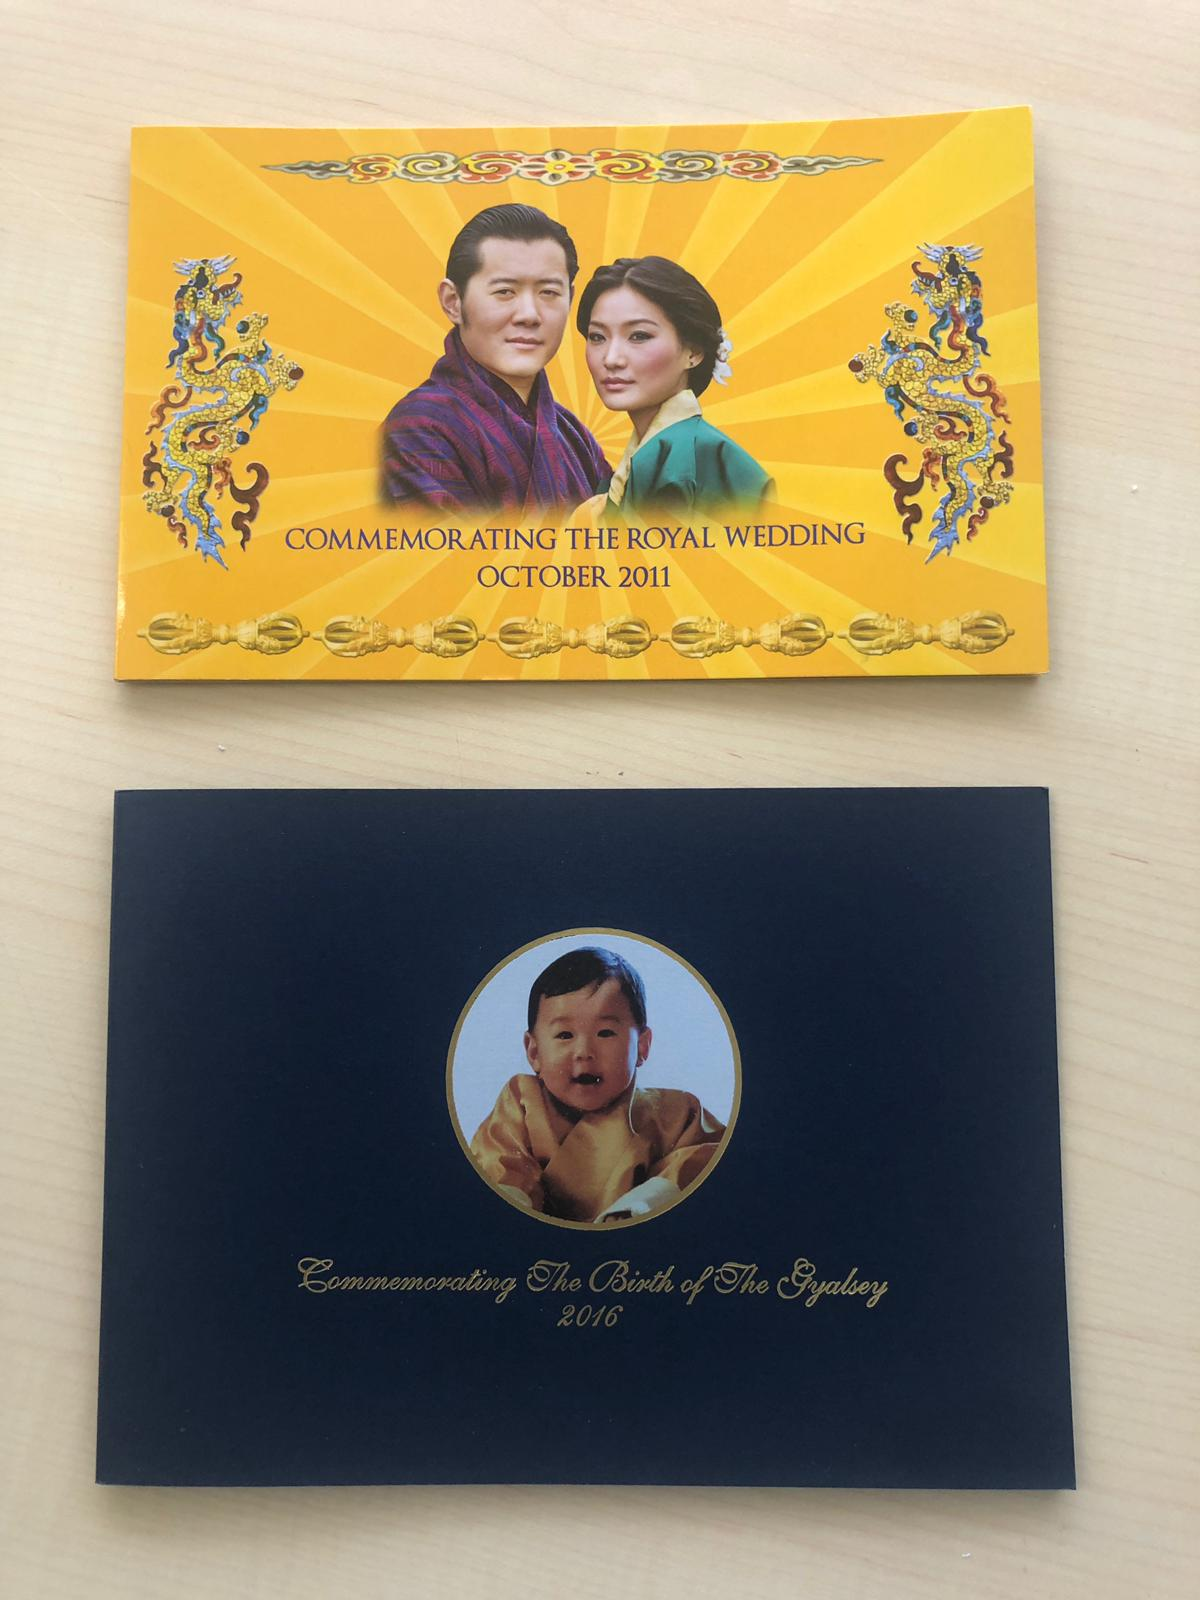 Inside look of commemorative notes issues by the Royal Monetary Authority